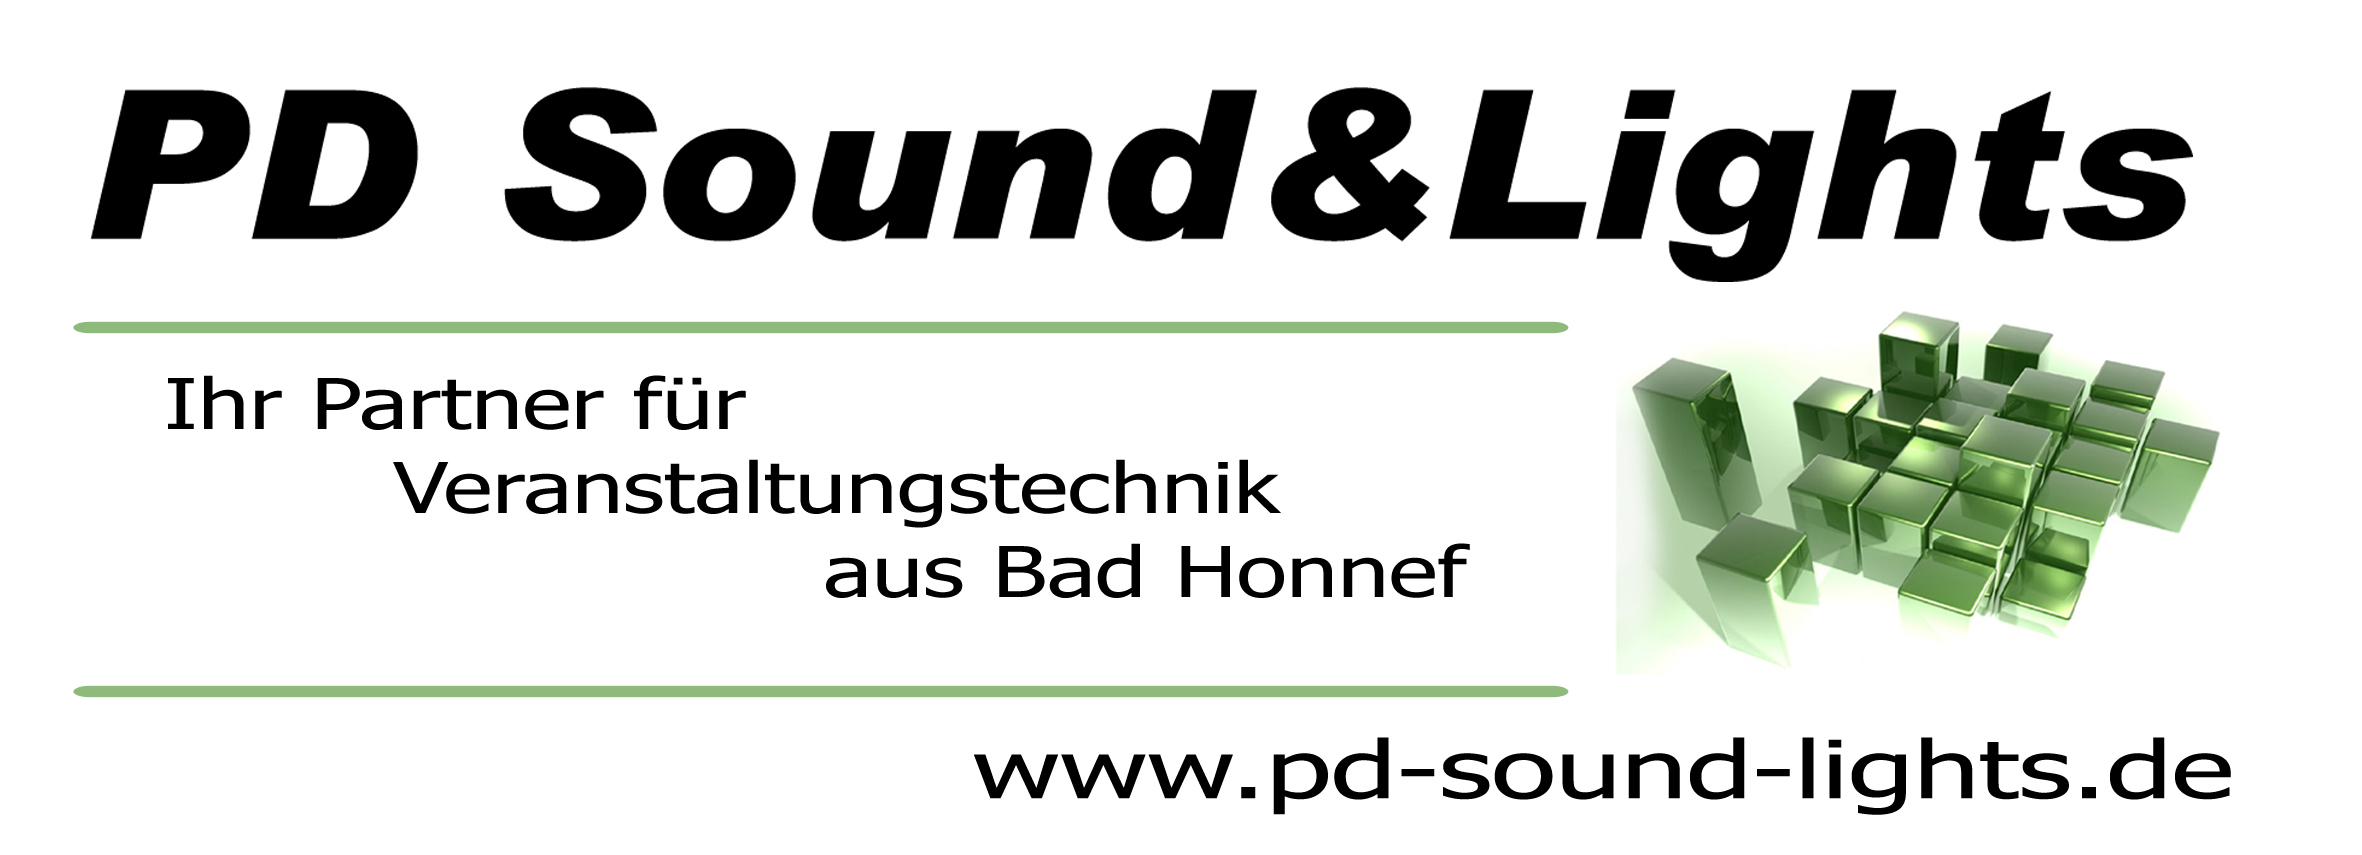 PD Sound & Lights